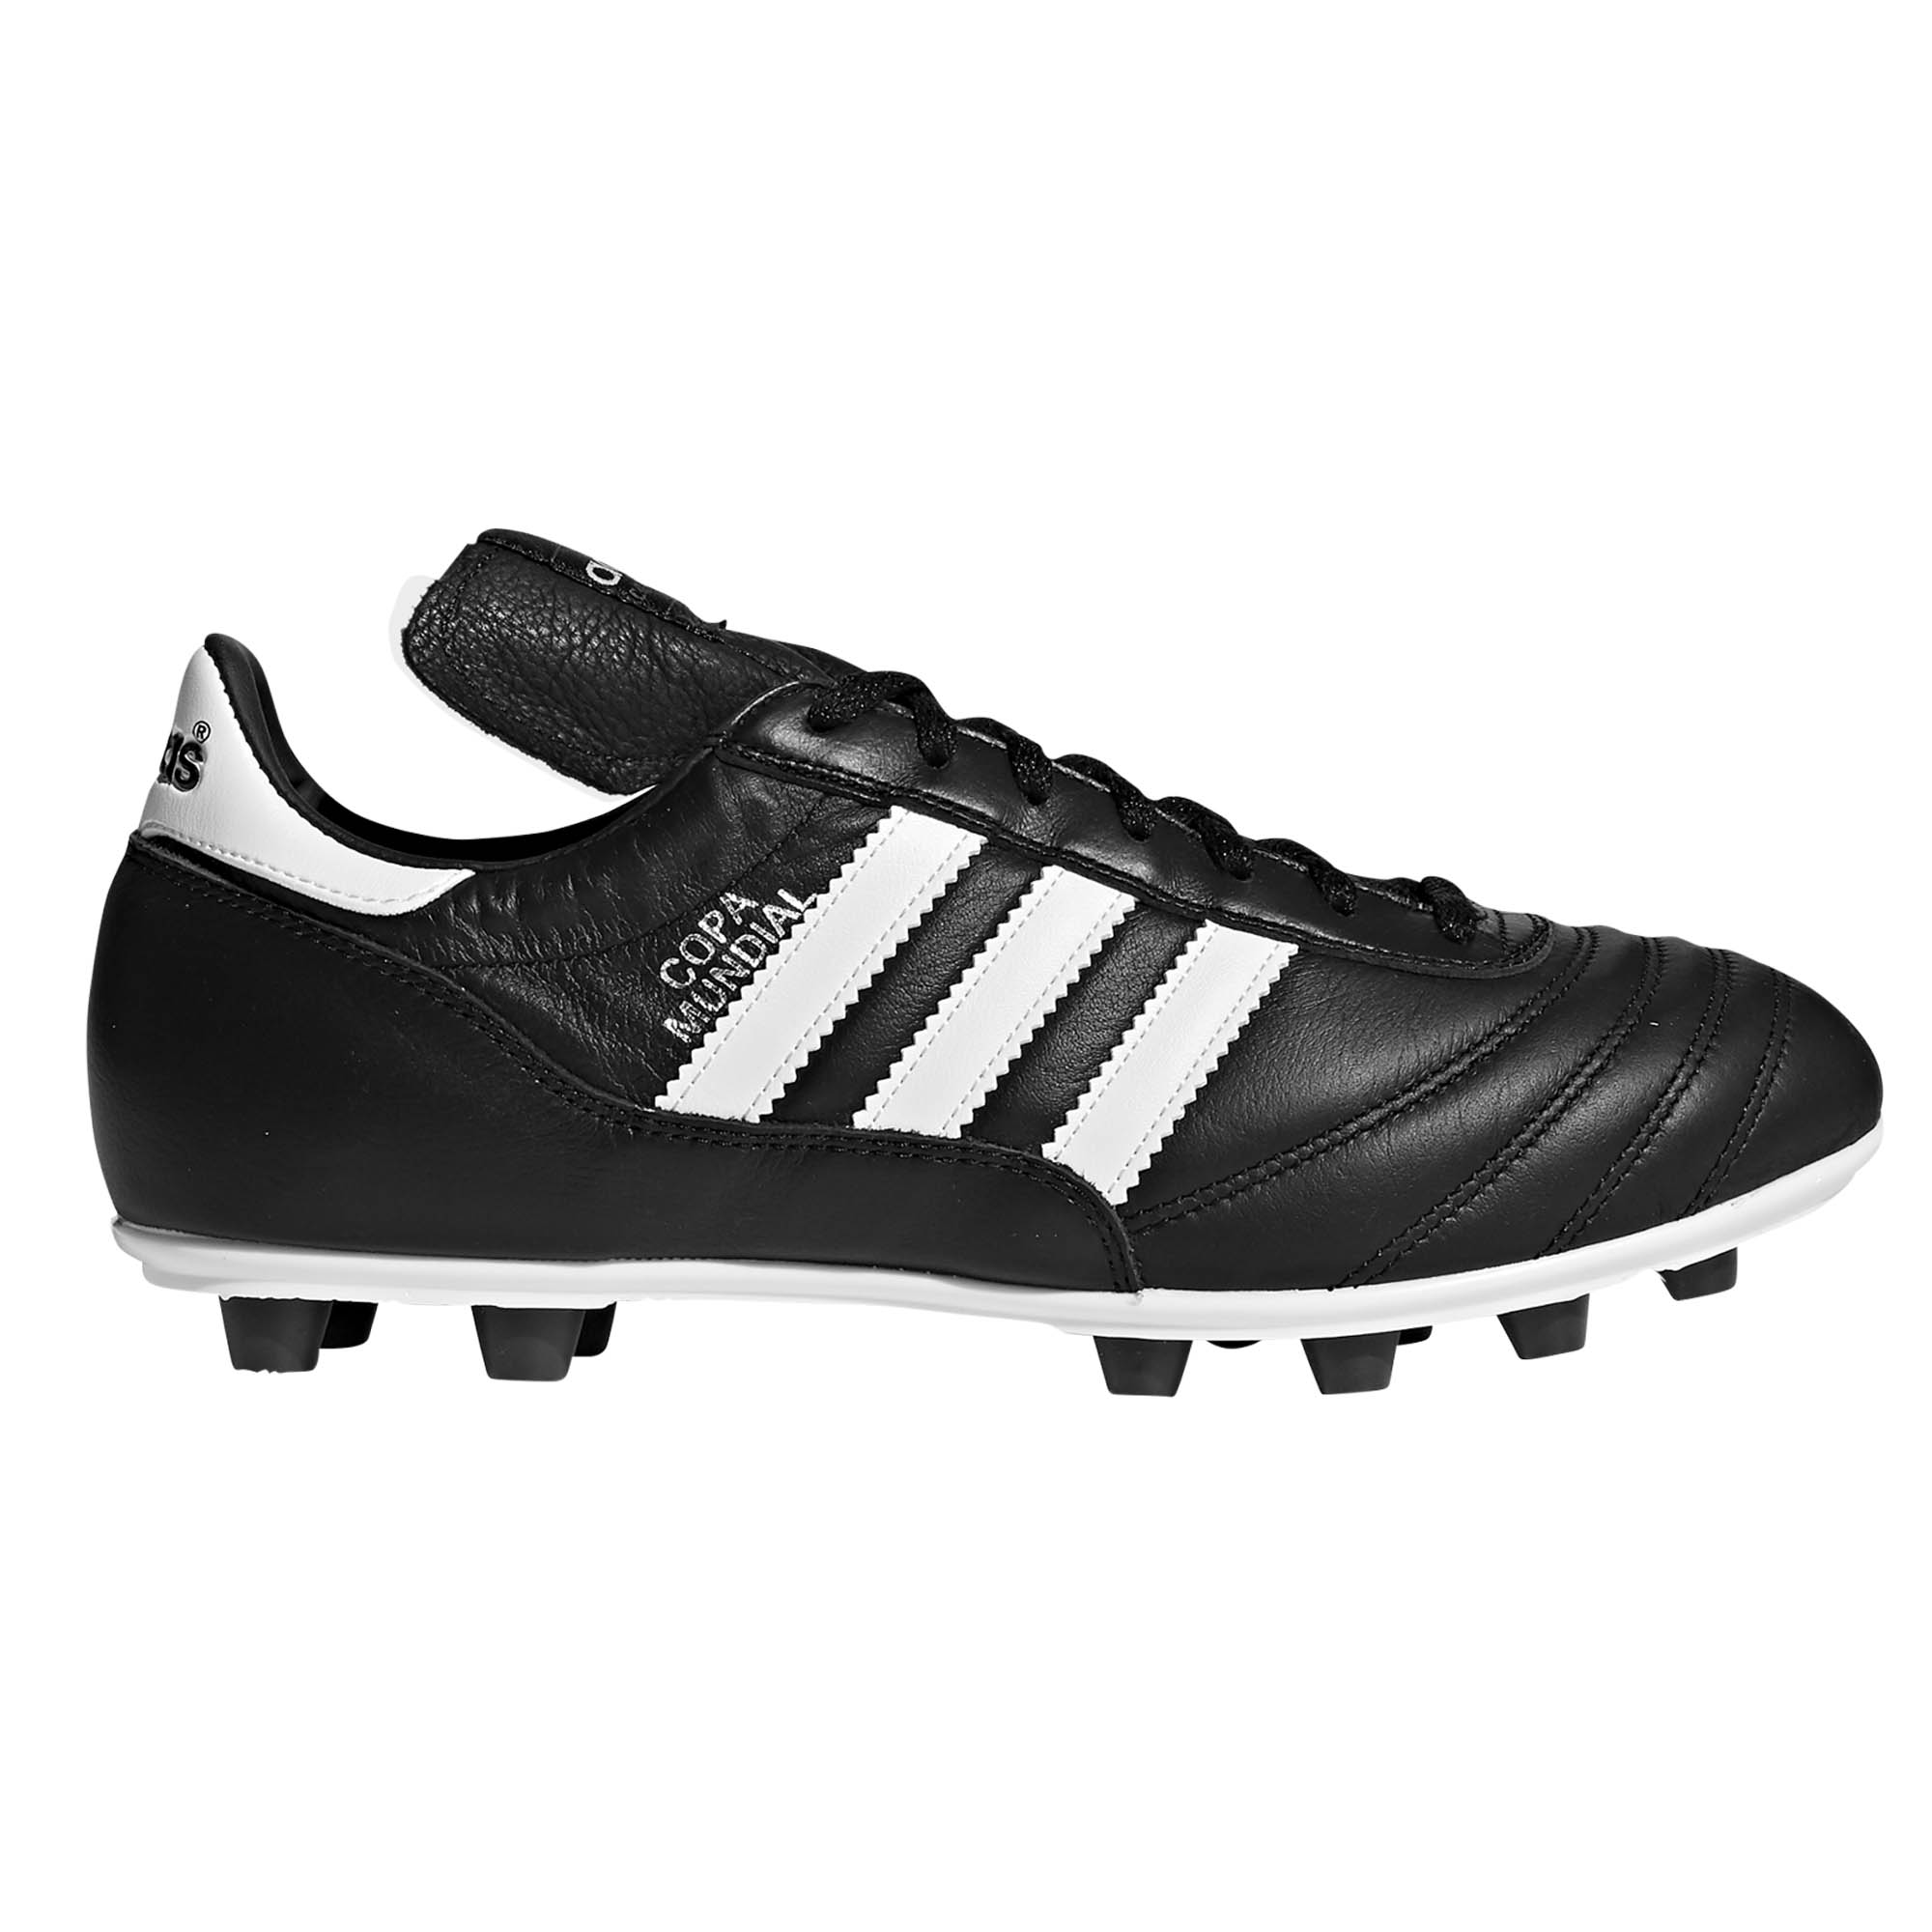 81a8fa3be Details about adidas Copa Mundial FG Firm Ground Mens Football Boot Black   White